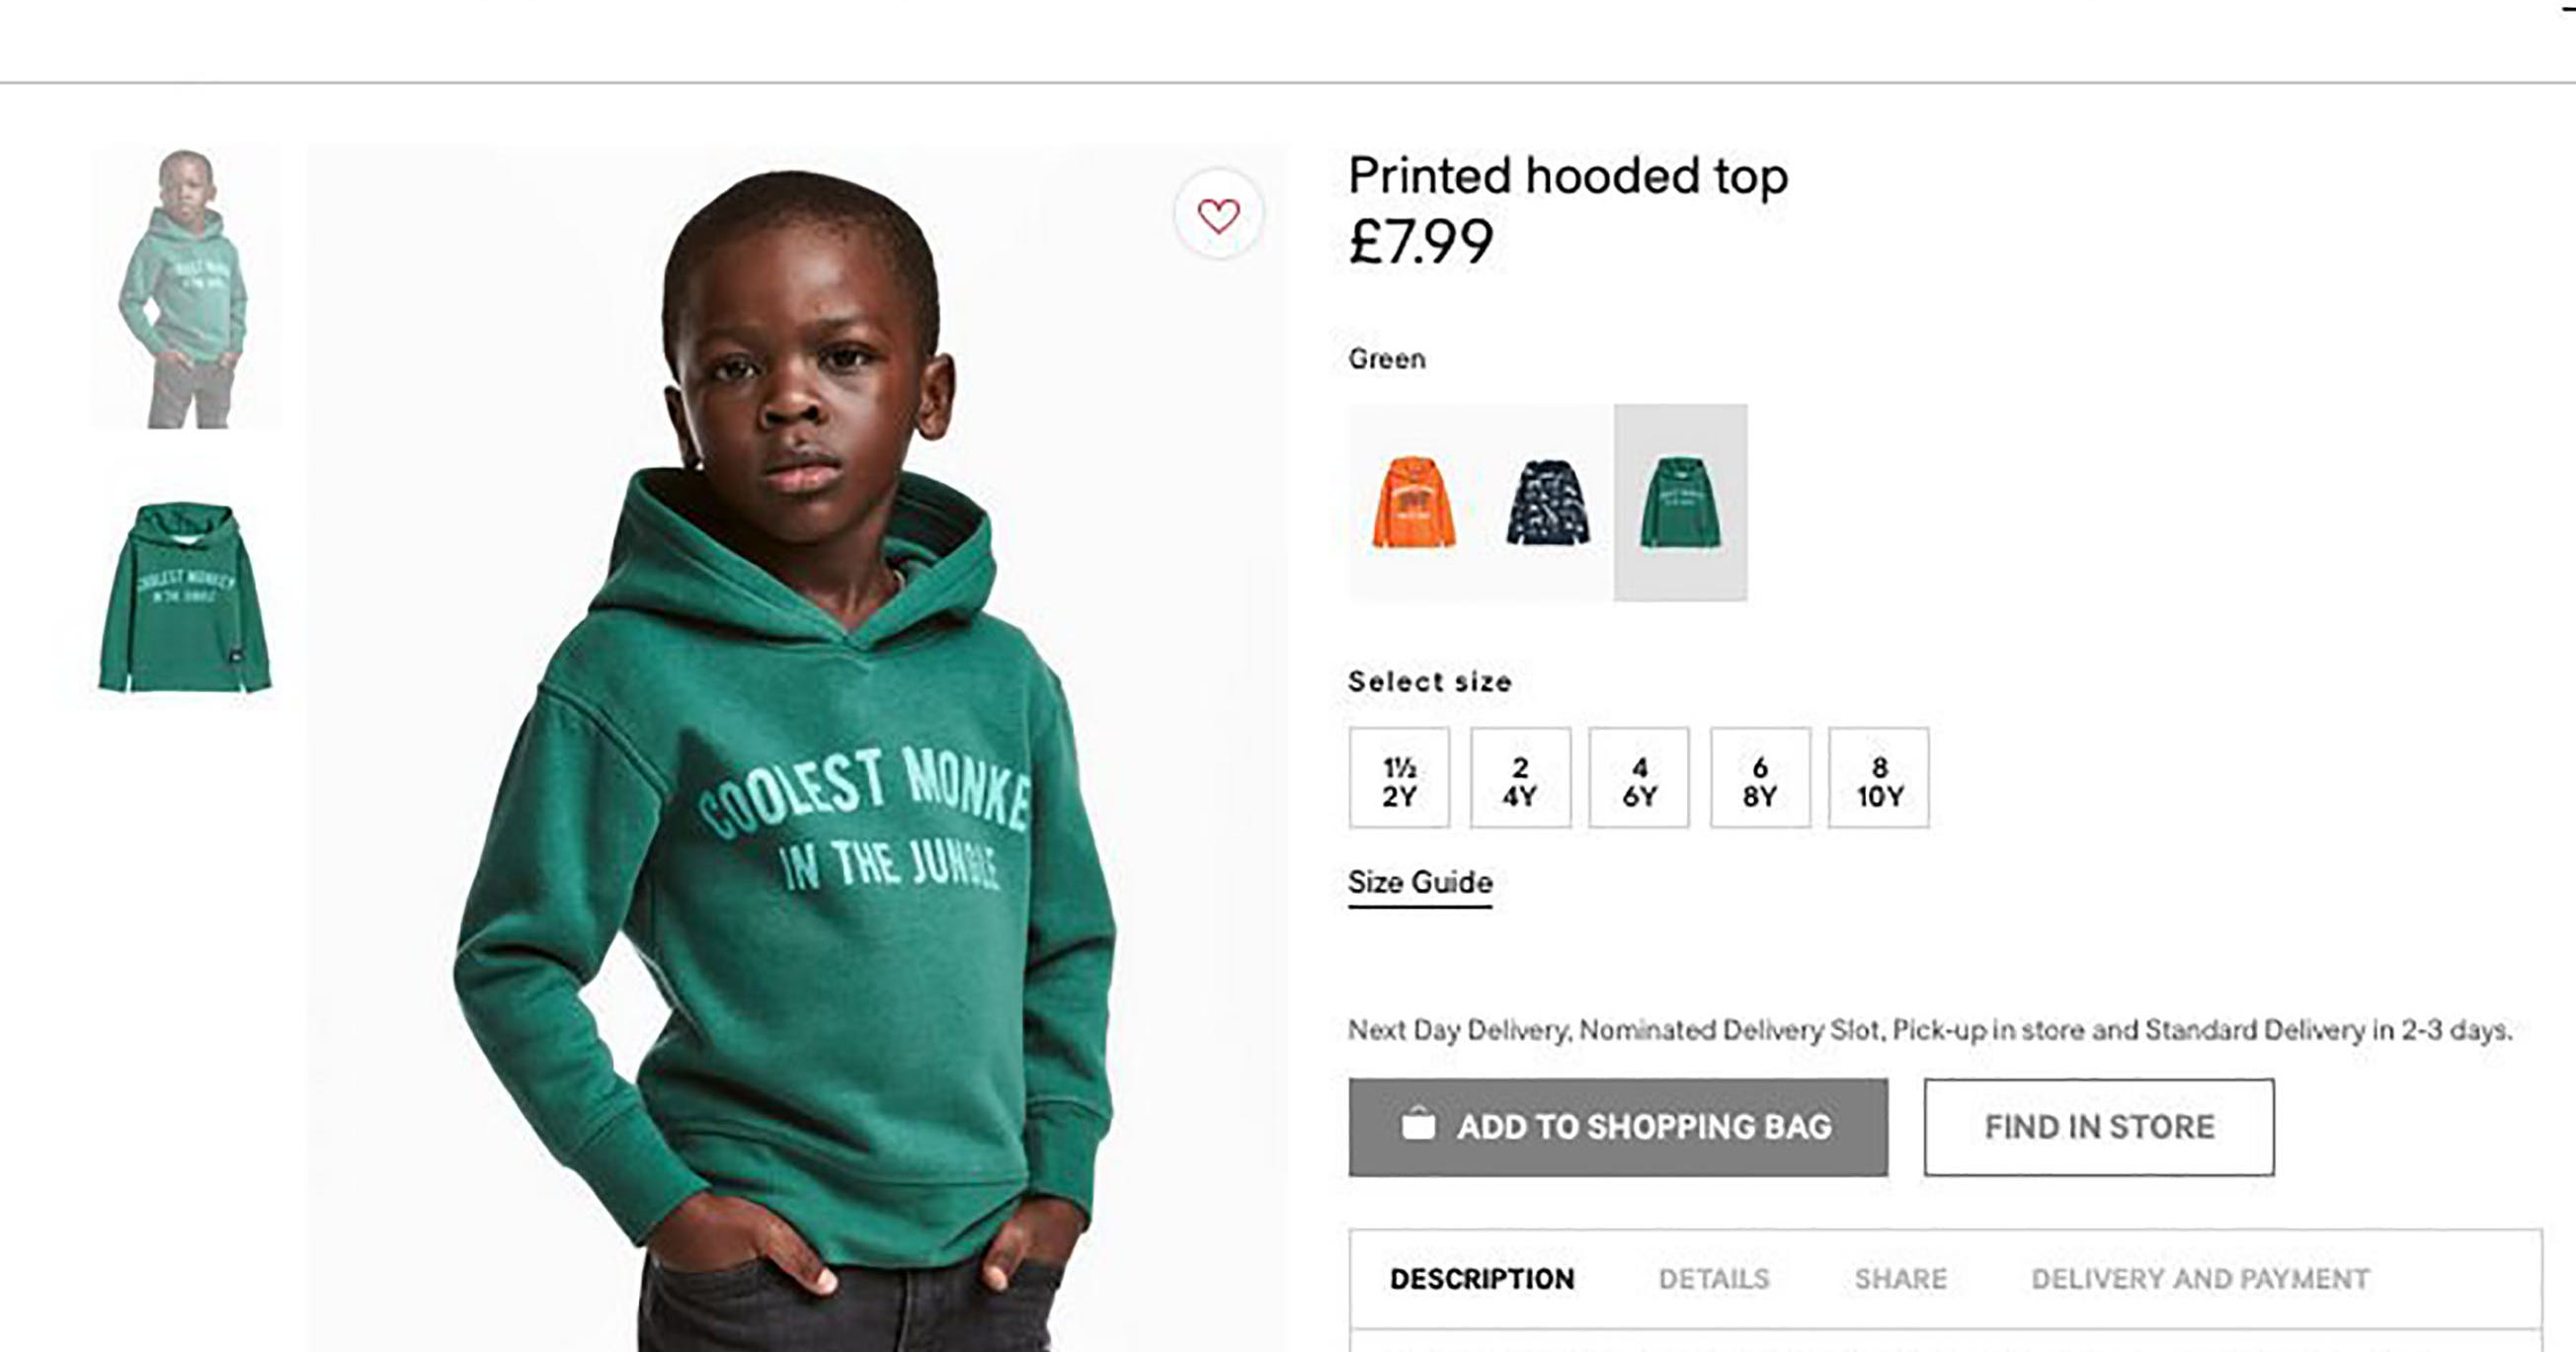 H&M Racist Monkey Sweatshirt Controversy 1 Year Later